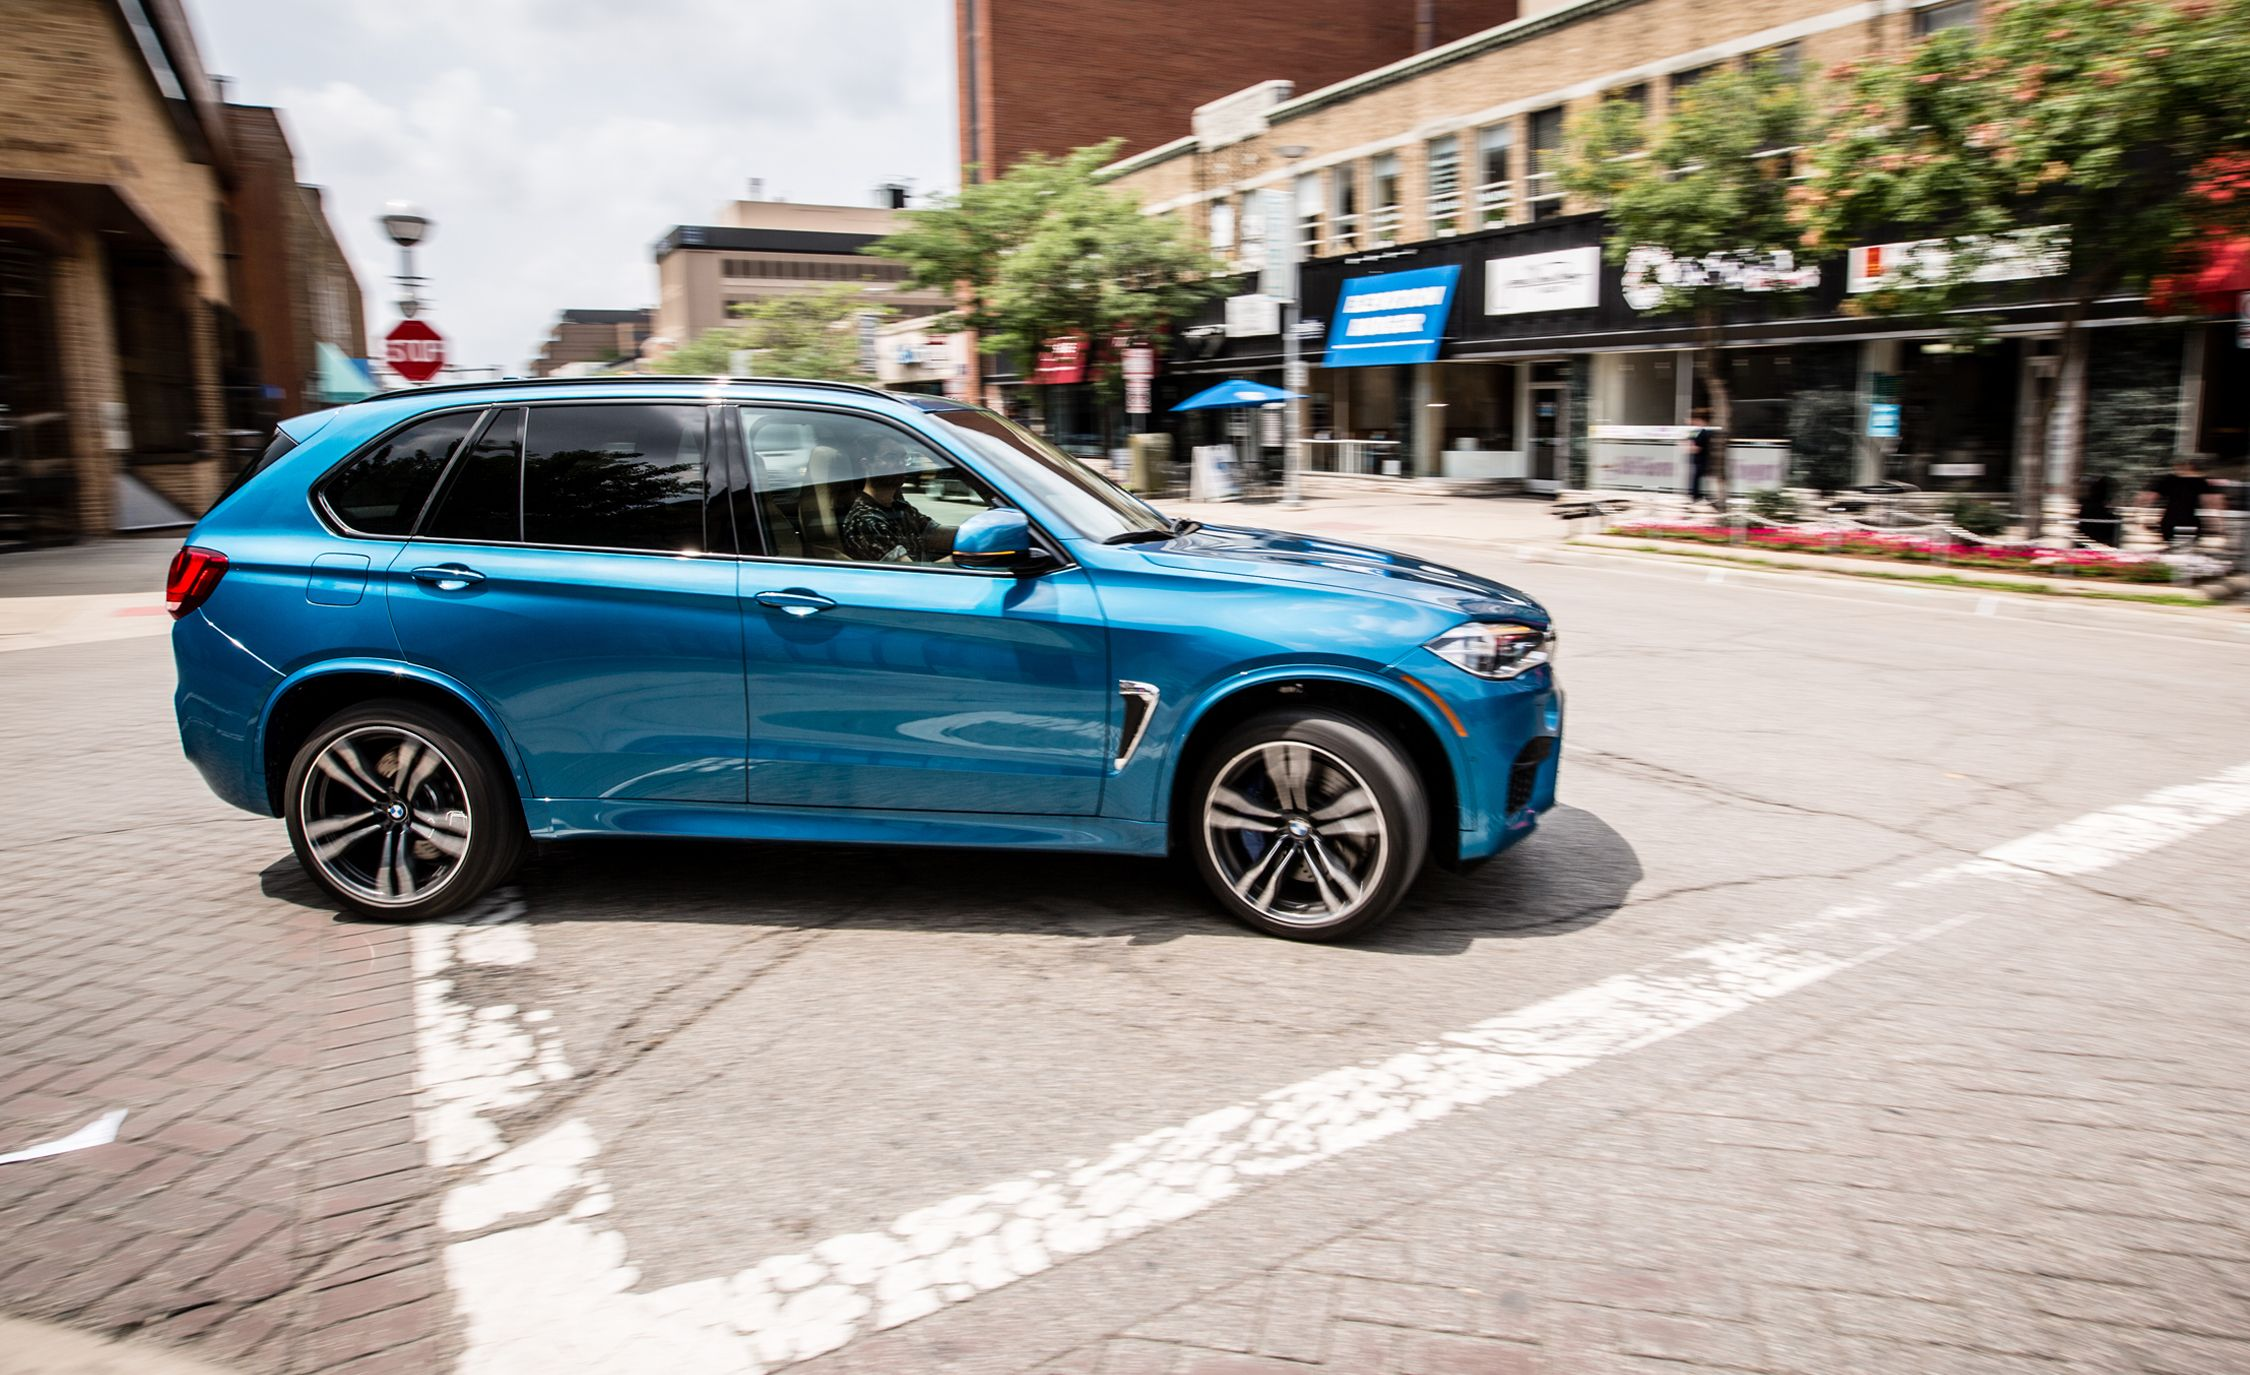 Bmw X5 M Reviews Bmw X5 M Price Photos And Specs Car And Driver